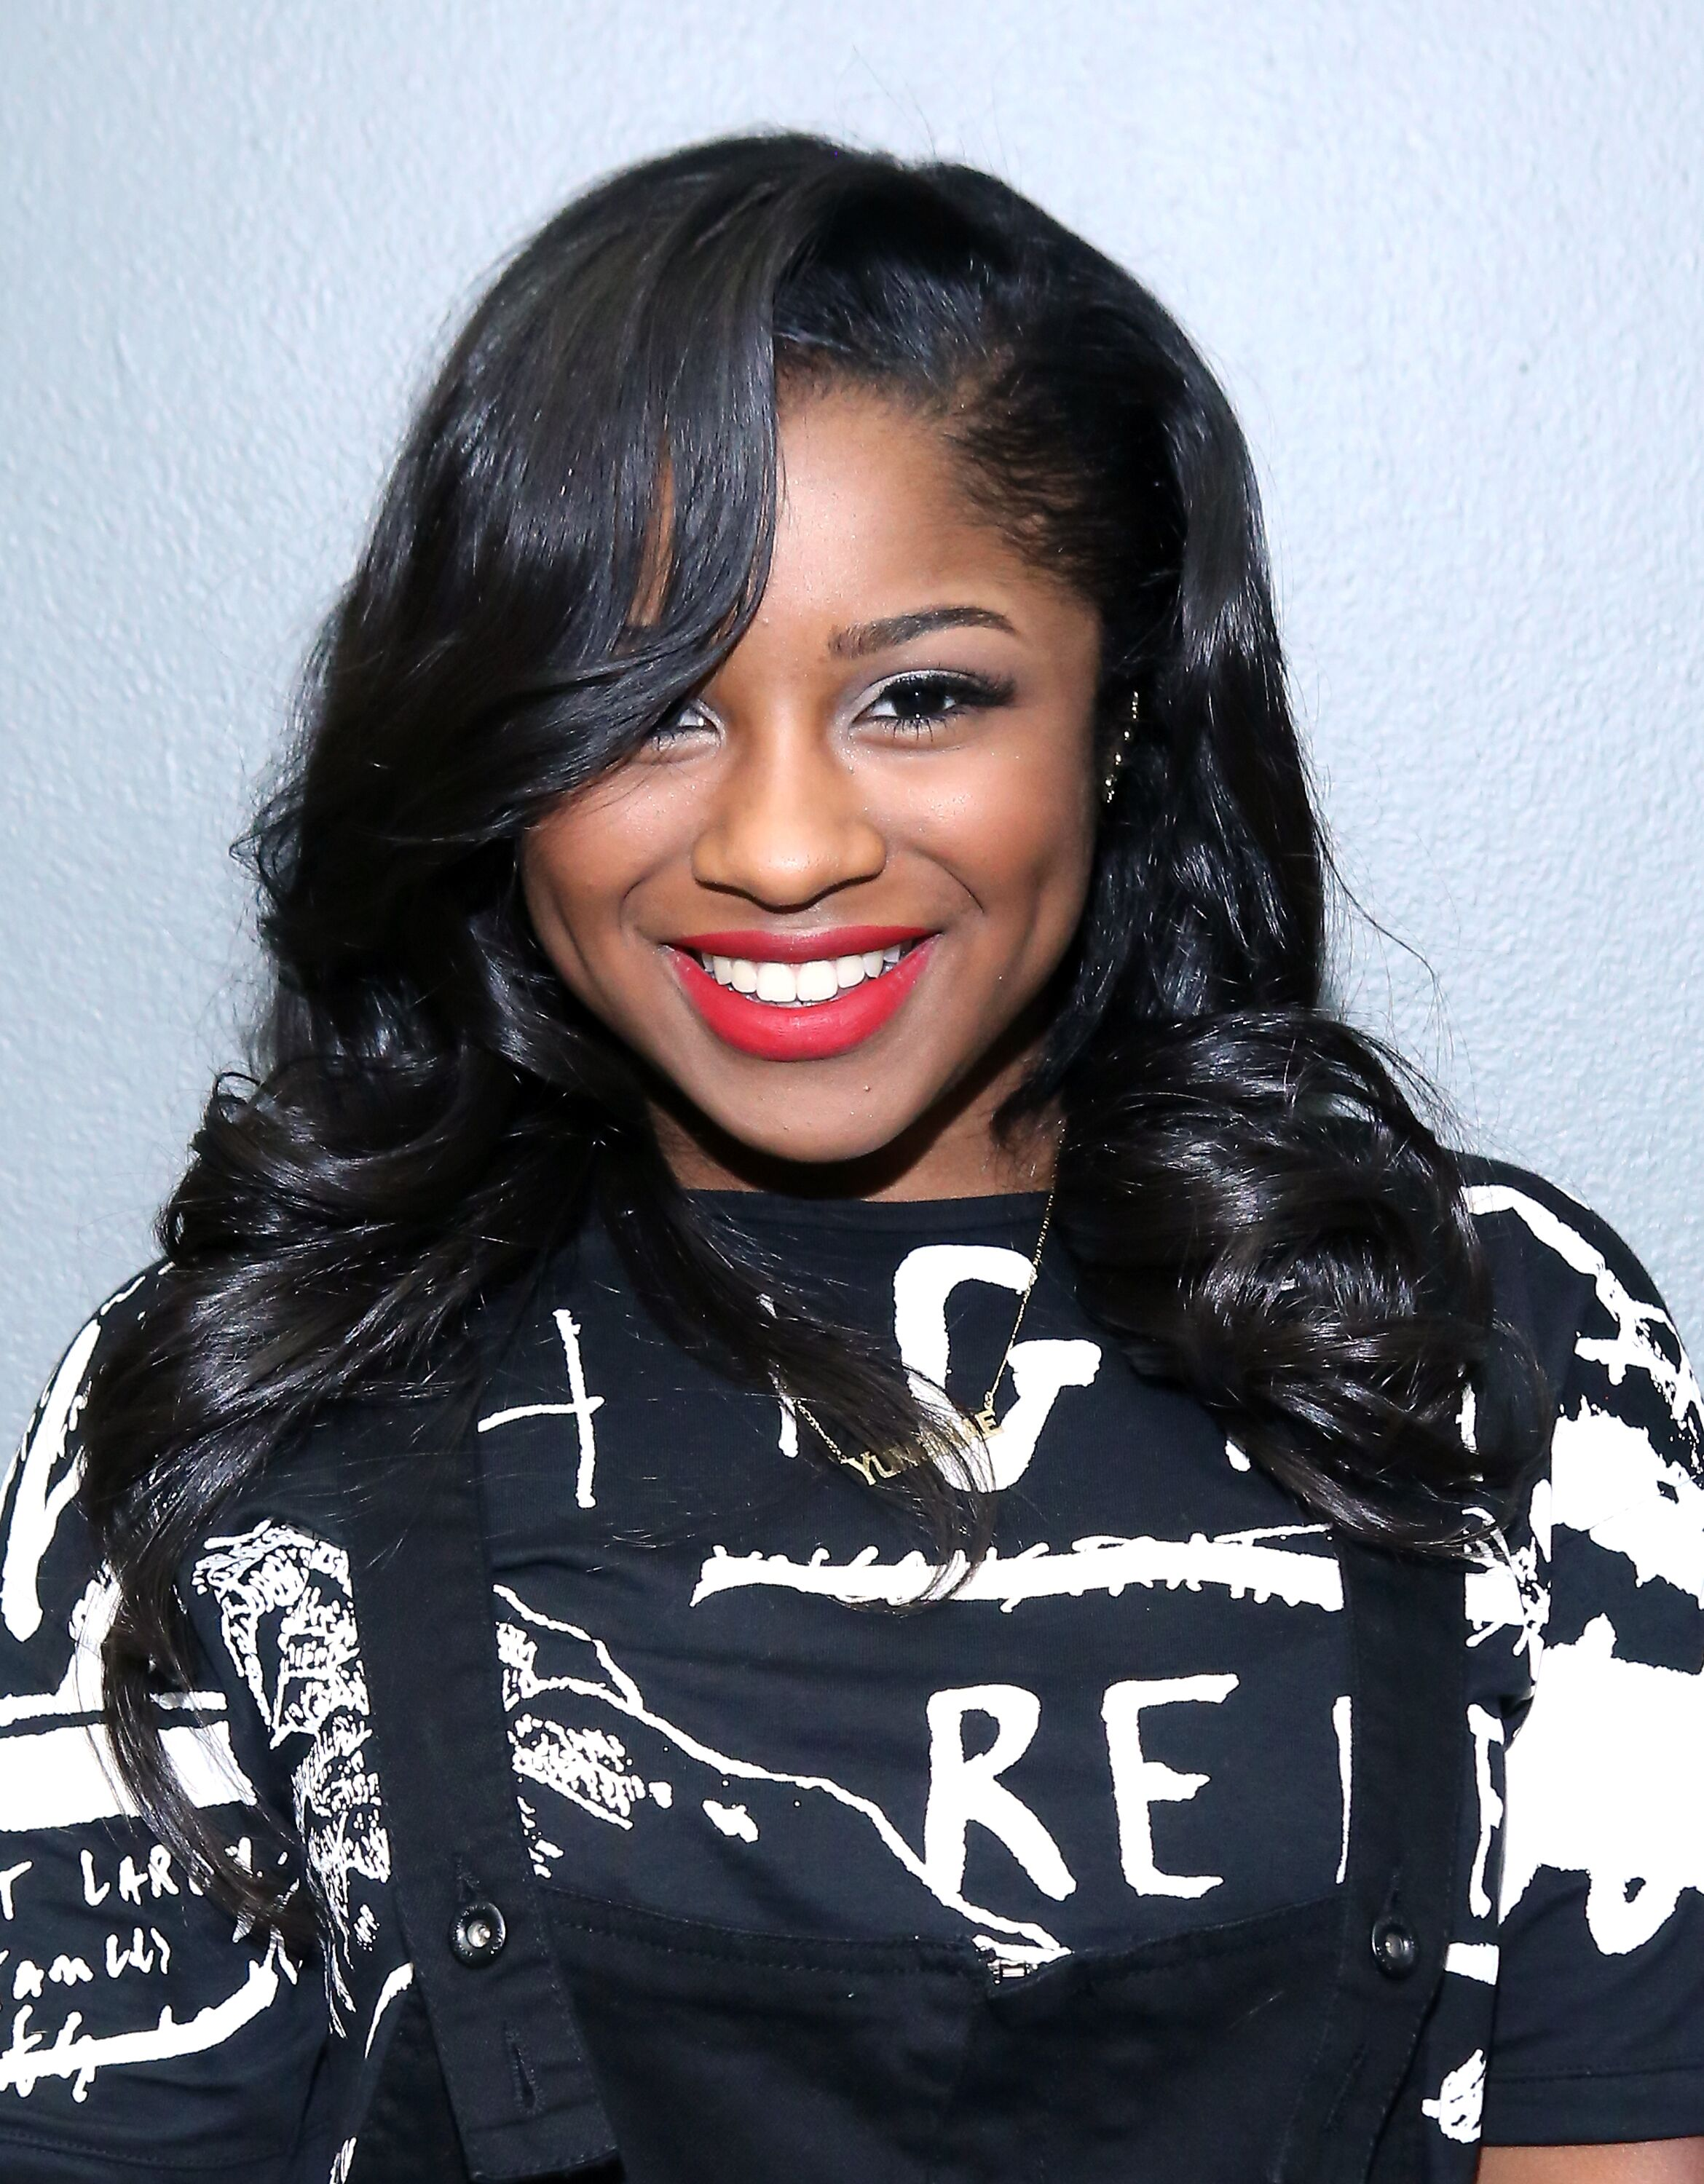 Recording artist Reginae Carter at the BET studio in August 2014. | Photo: Getty Images